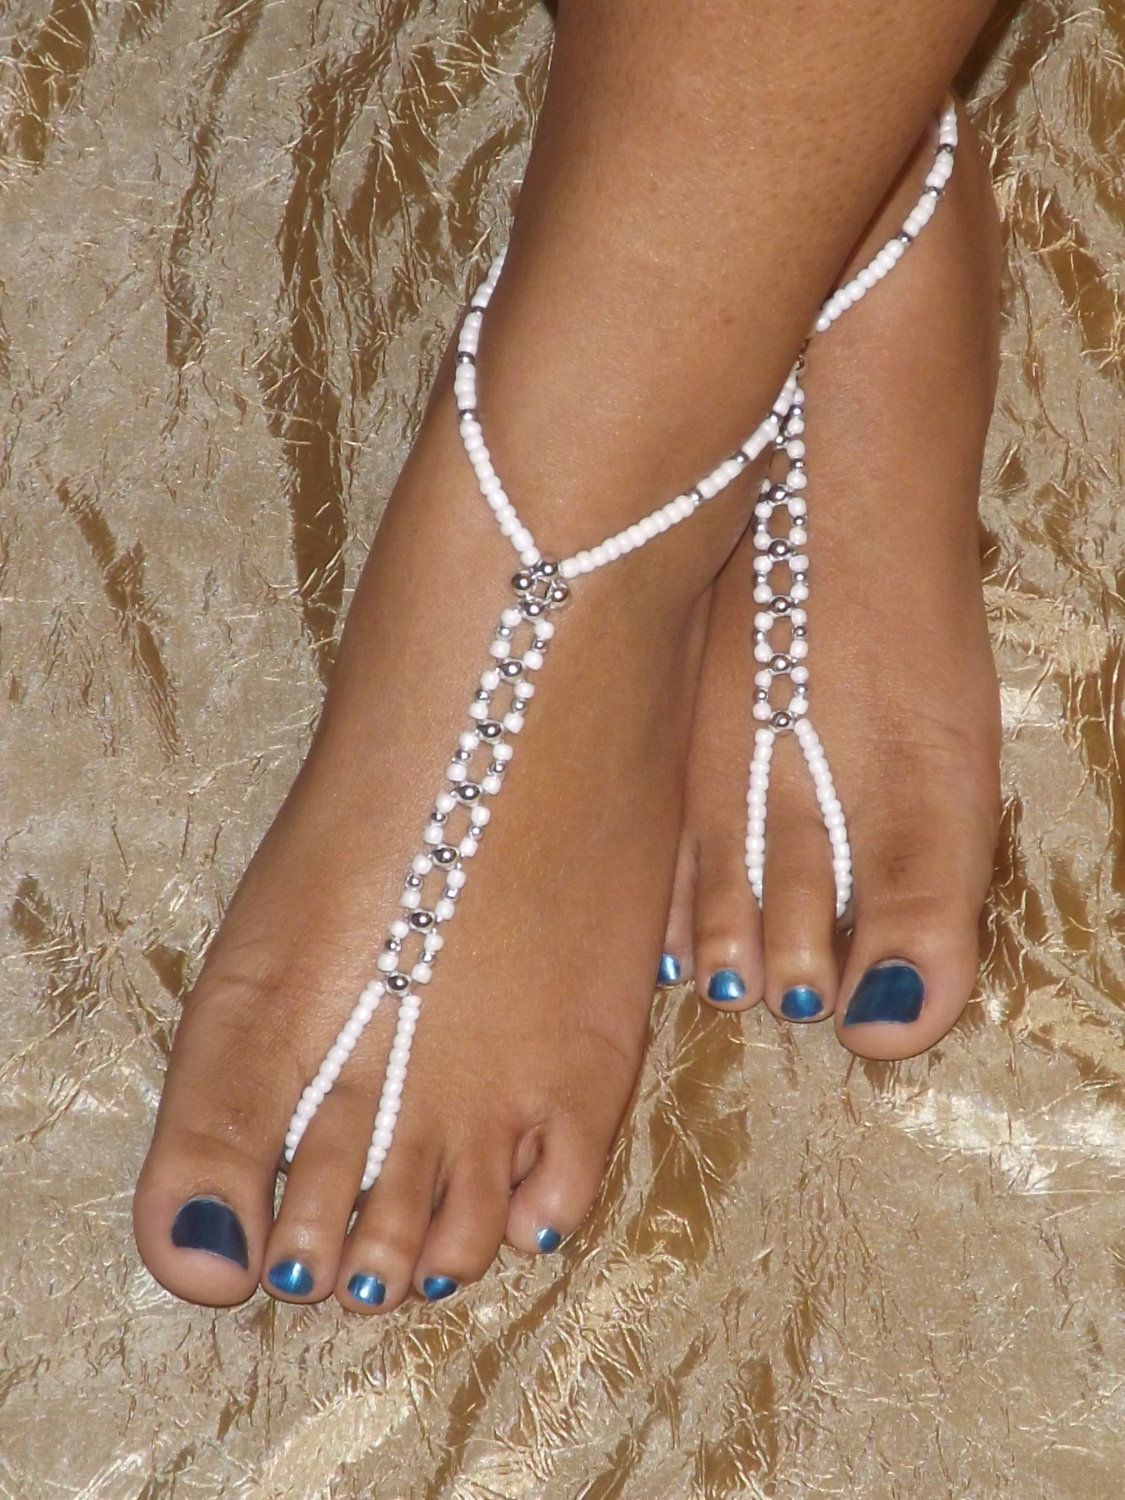 cecc549de4b3 This pair of Barefoot sandals was made with stretch magic cord ...